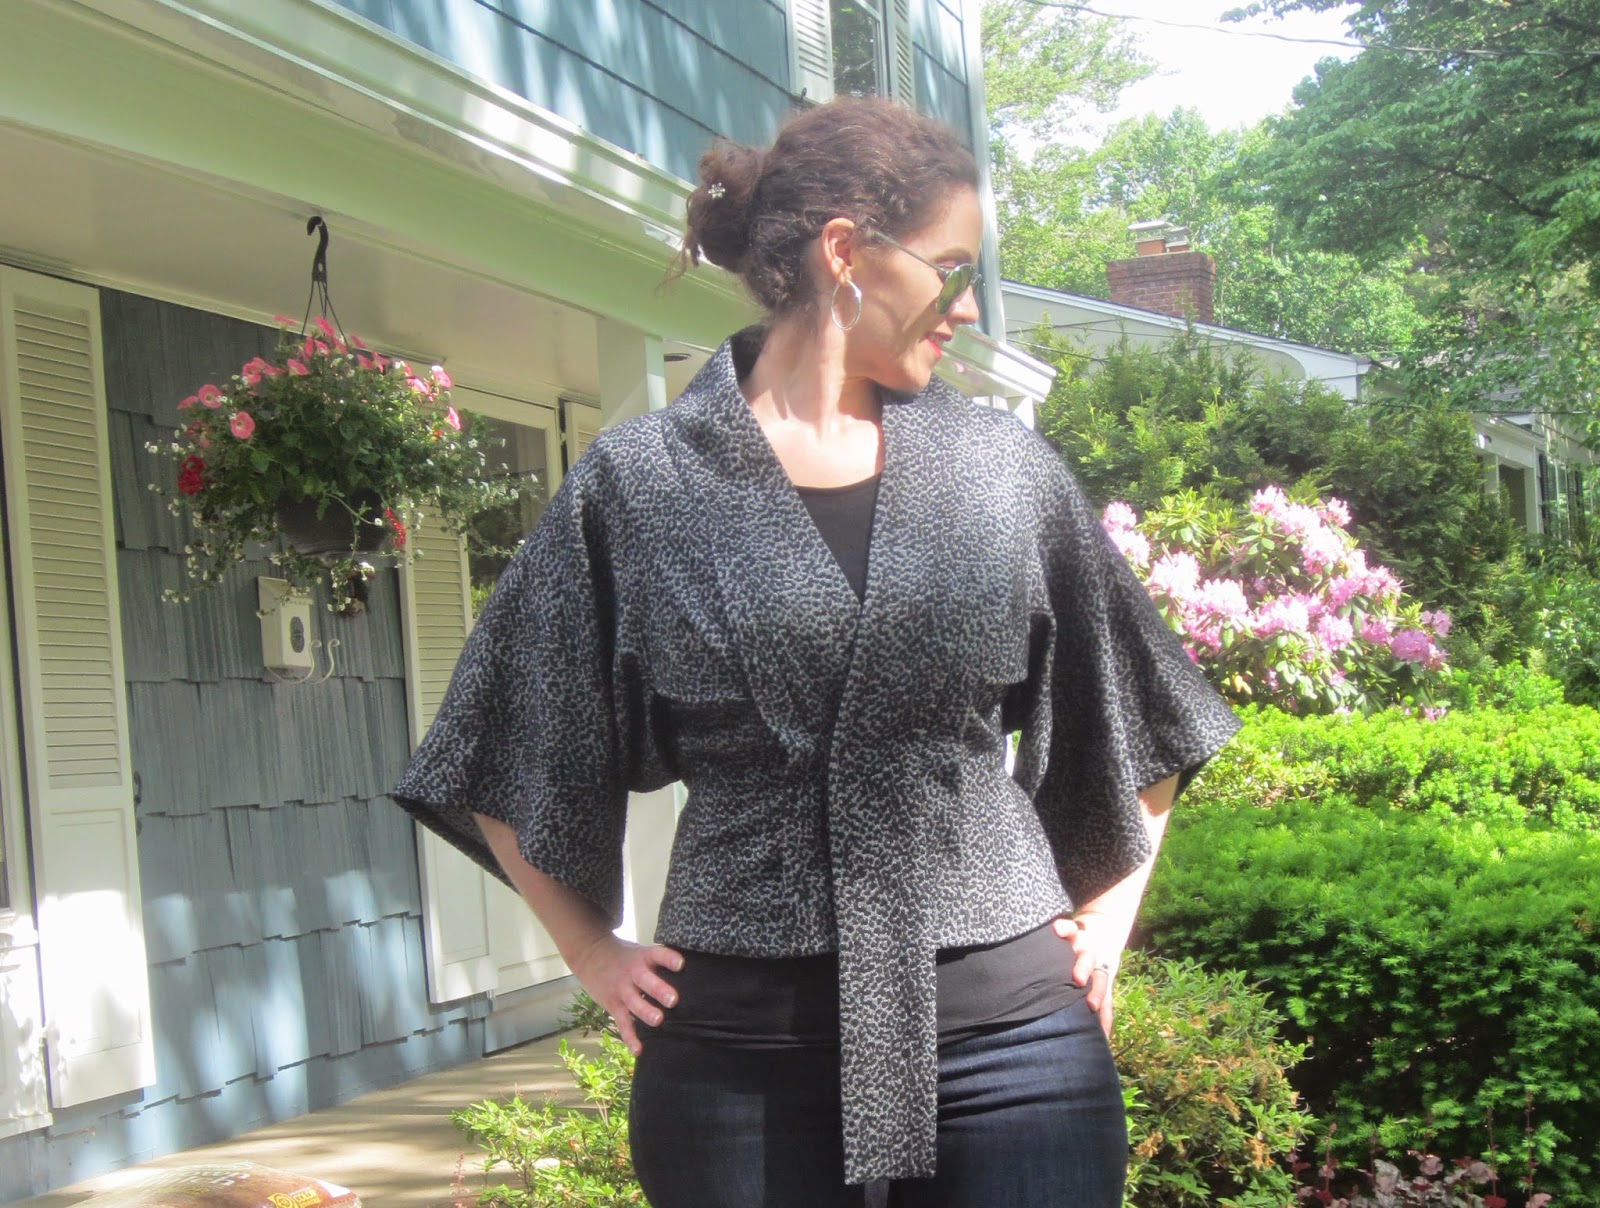 Clio & Phineas: Alexander McQueen Jacket - Finished! (And already ...